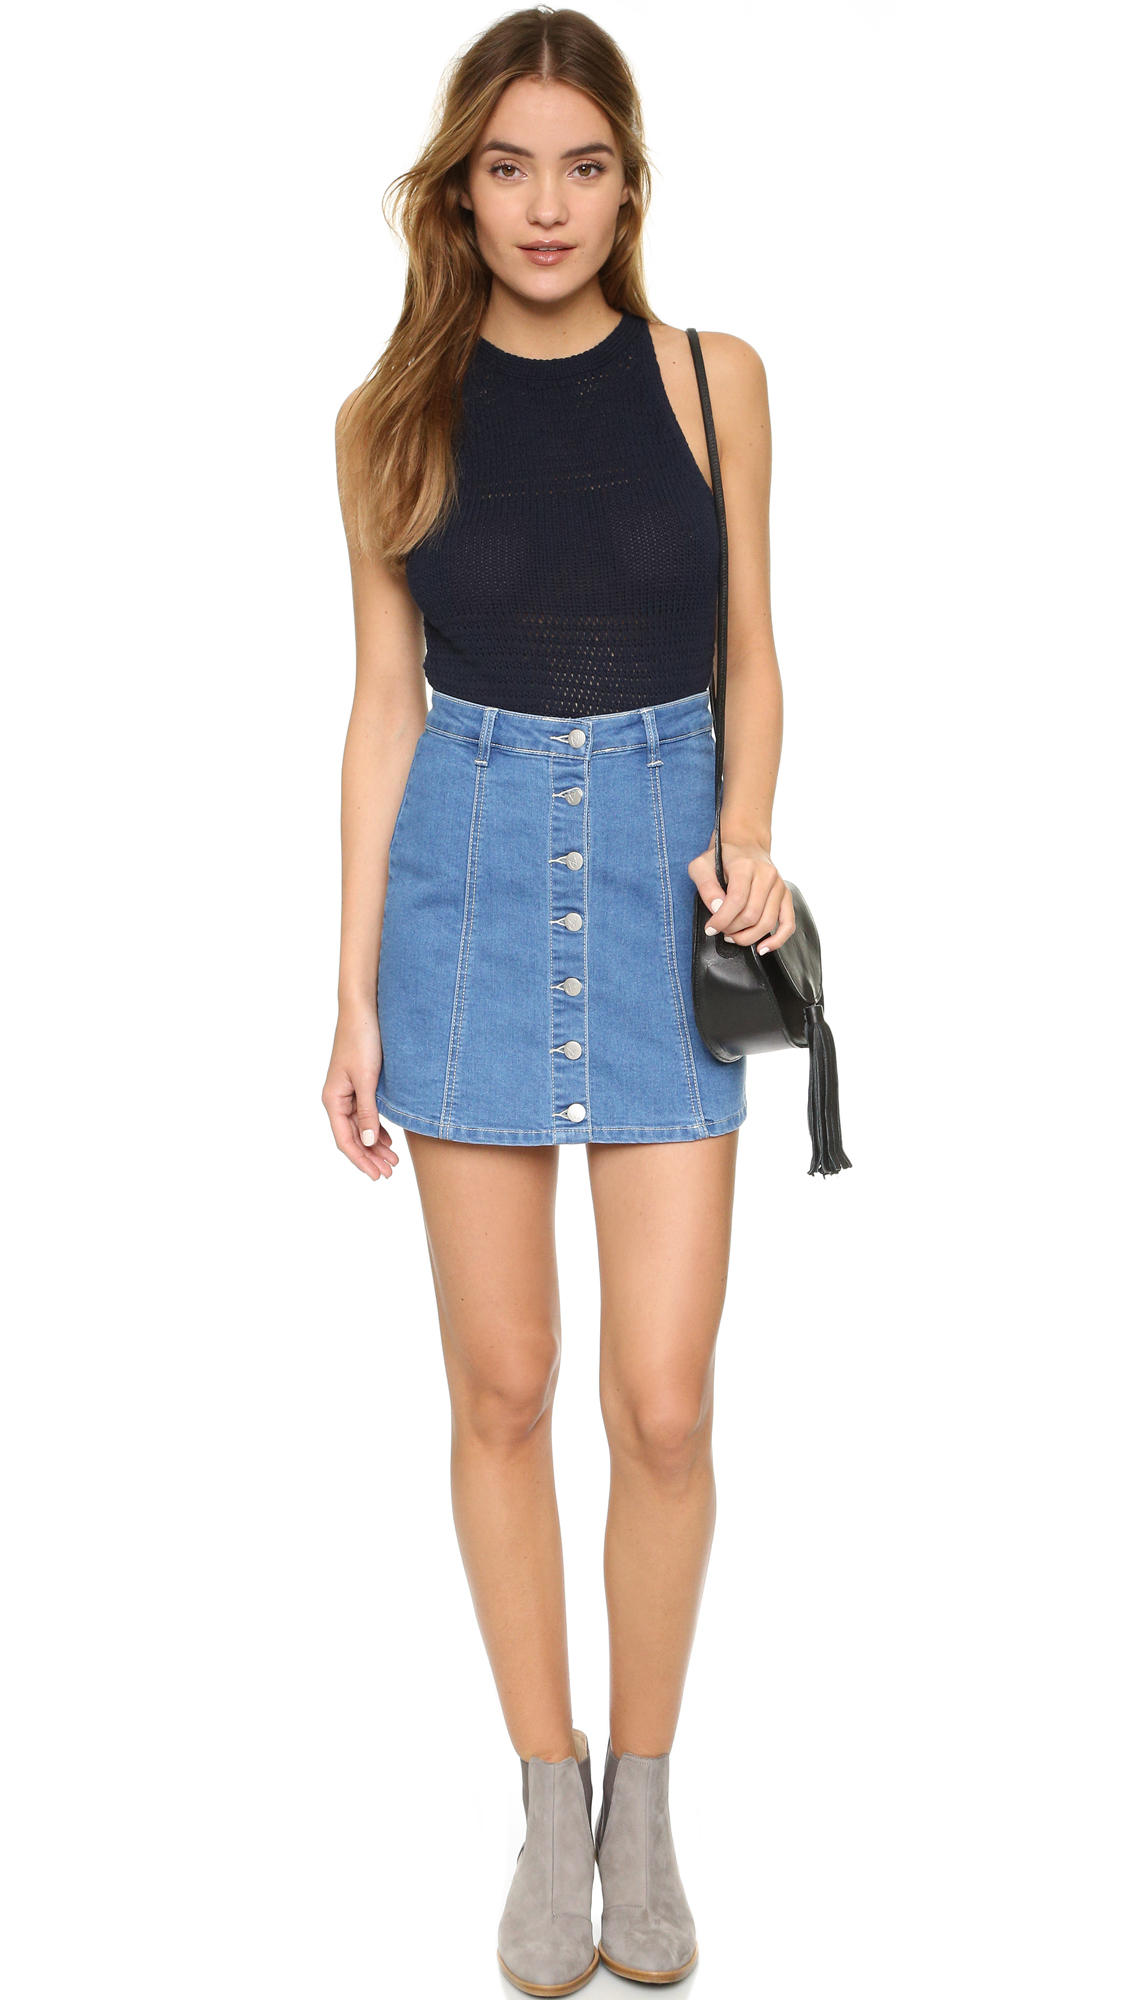 Minkpink All I Want Button Up Skirt in Blue | Lyst